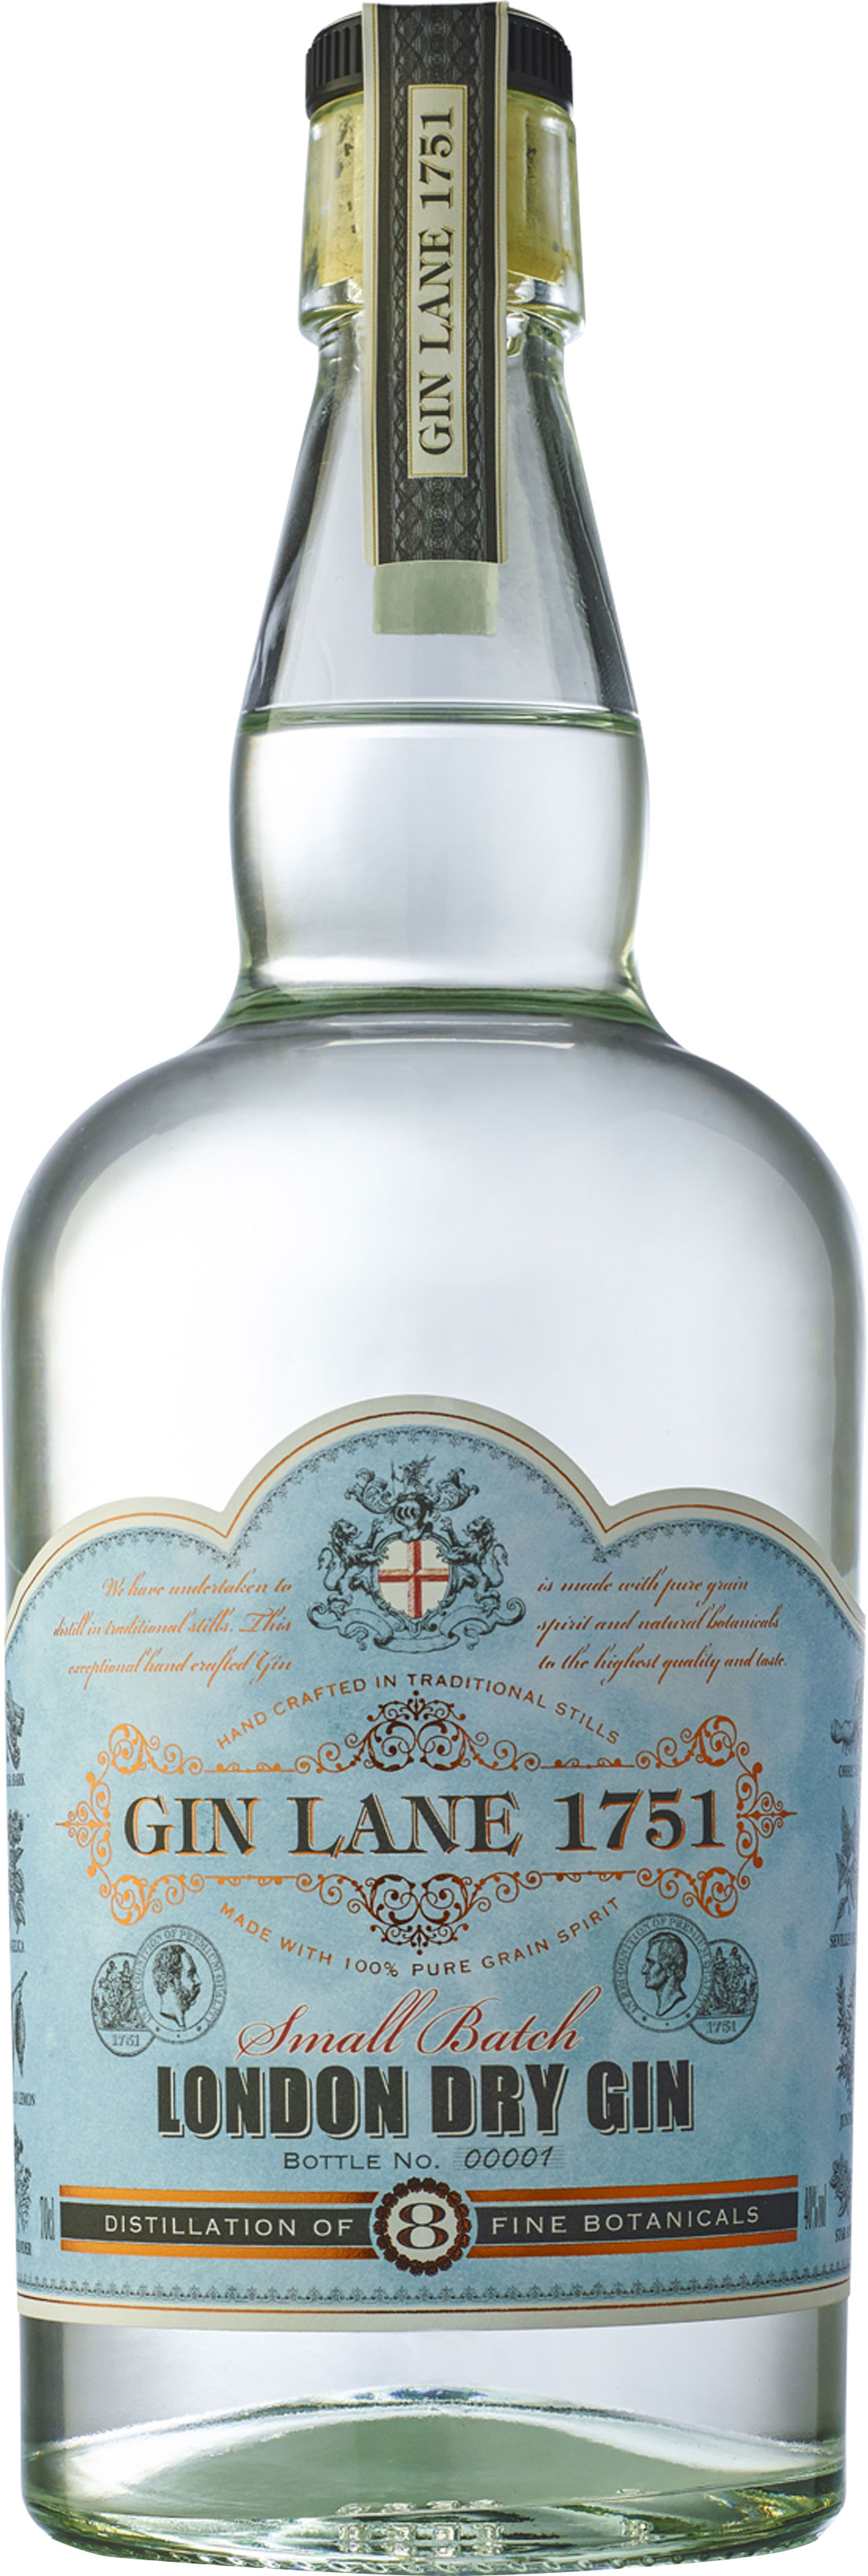 Gin Lane 1751 - London Dry Gin 70cl Bottle